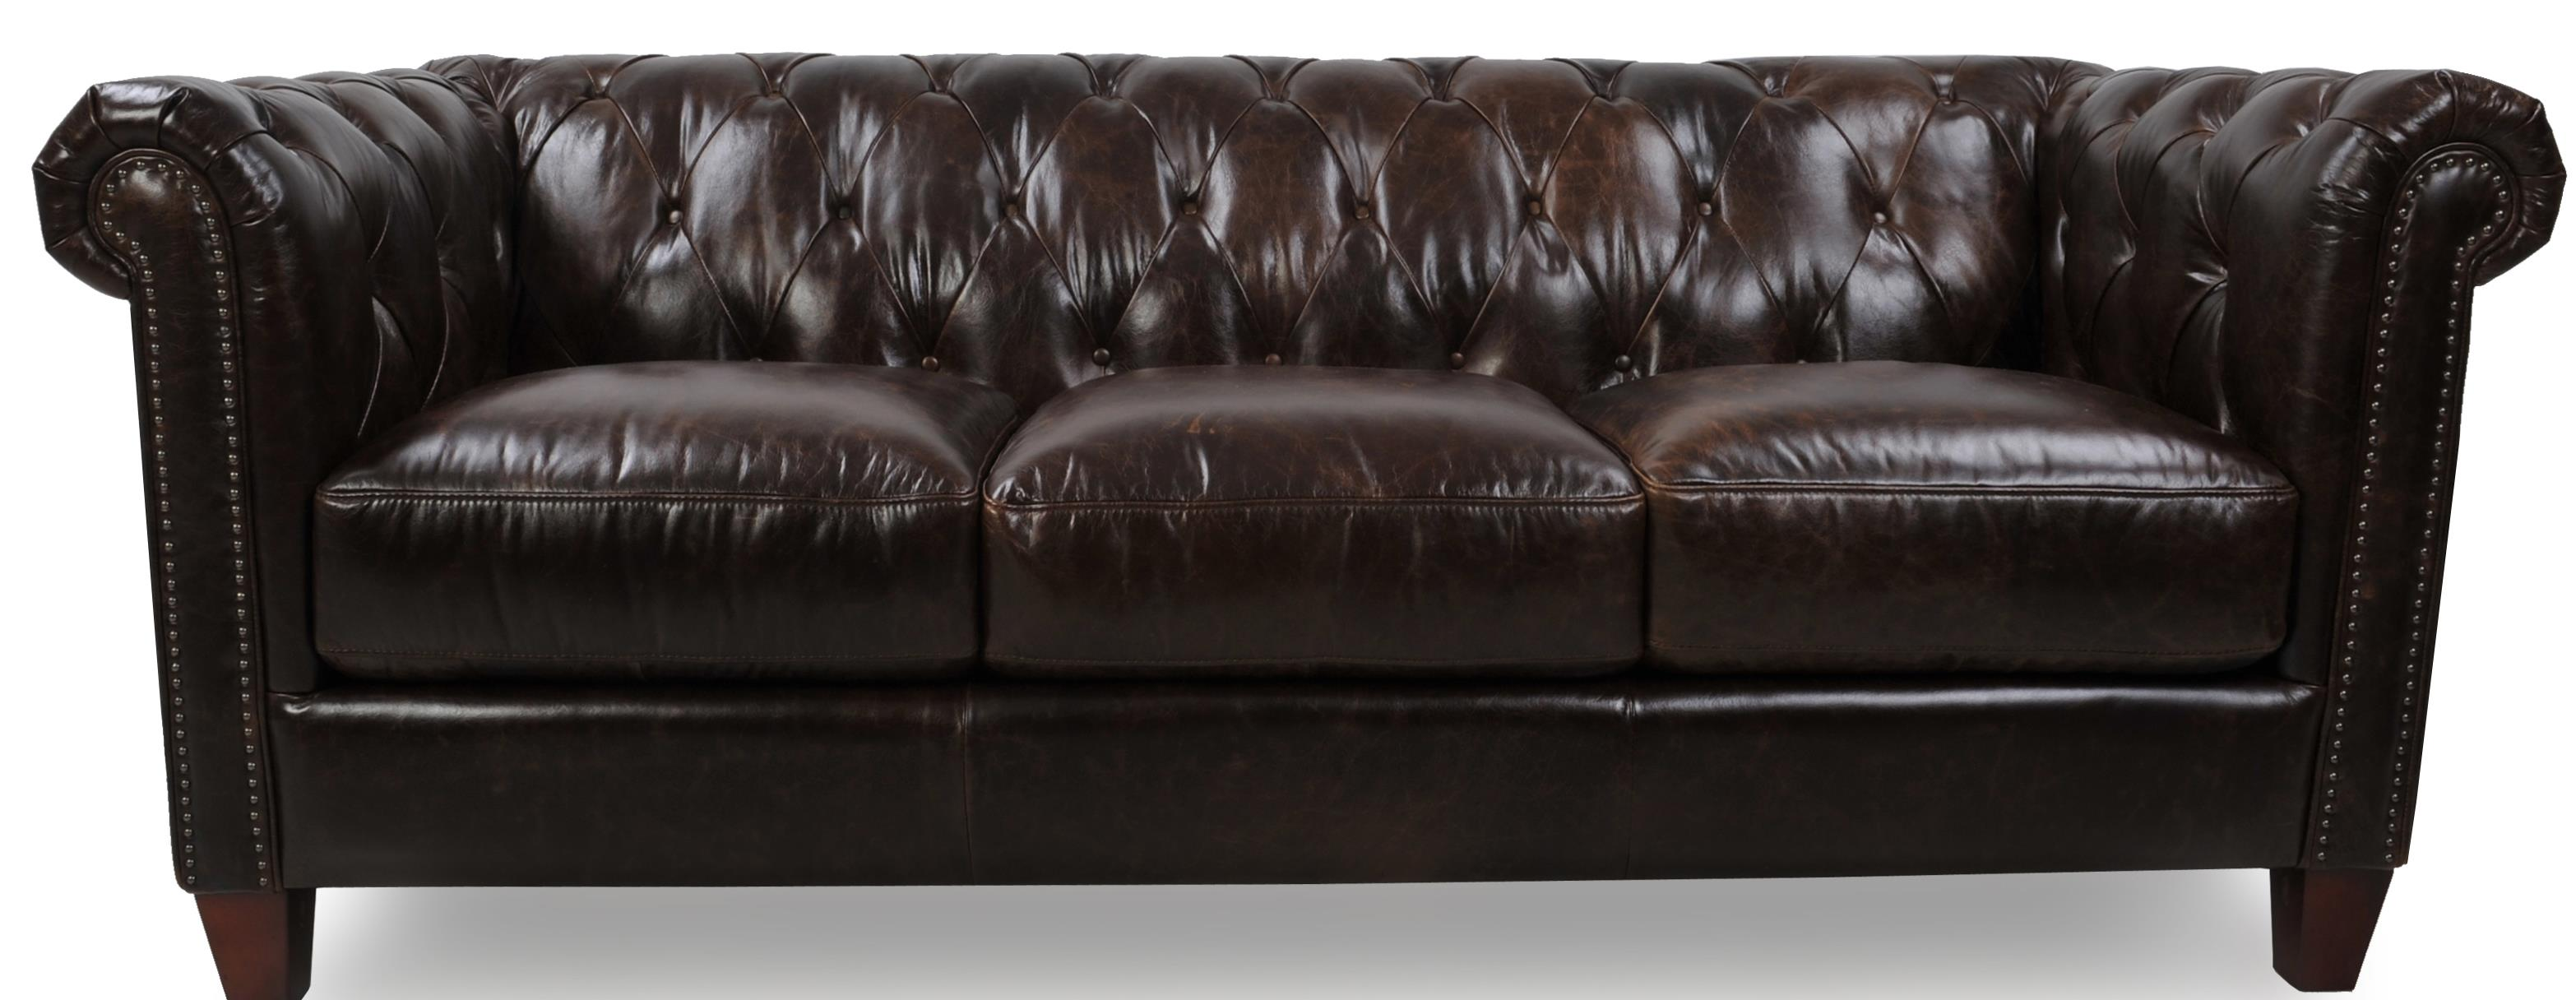 Futura Leather 8687 Traditional Sofa - Item Number: 8687-30-2049F